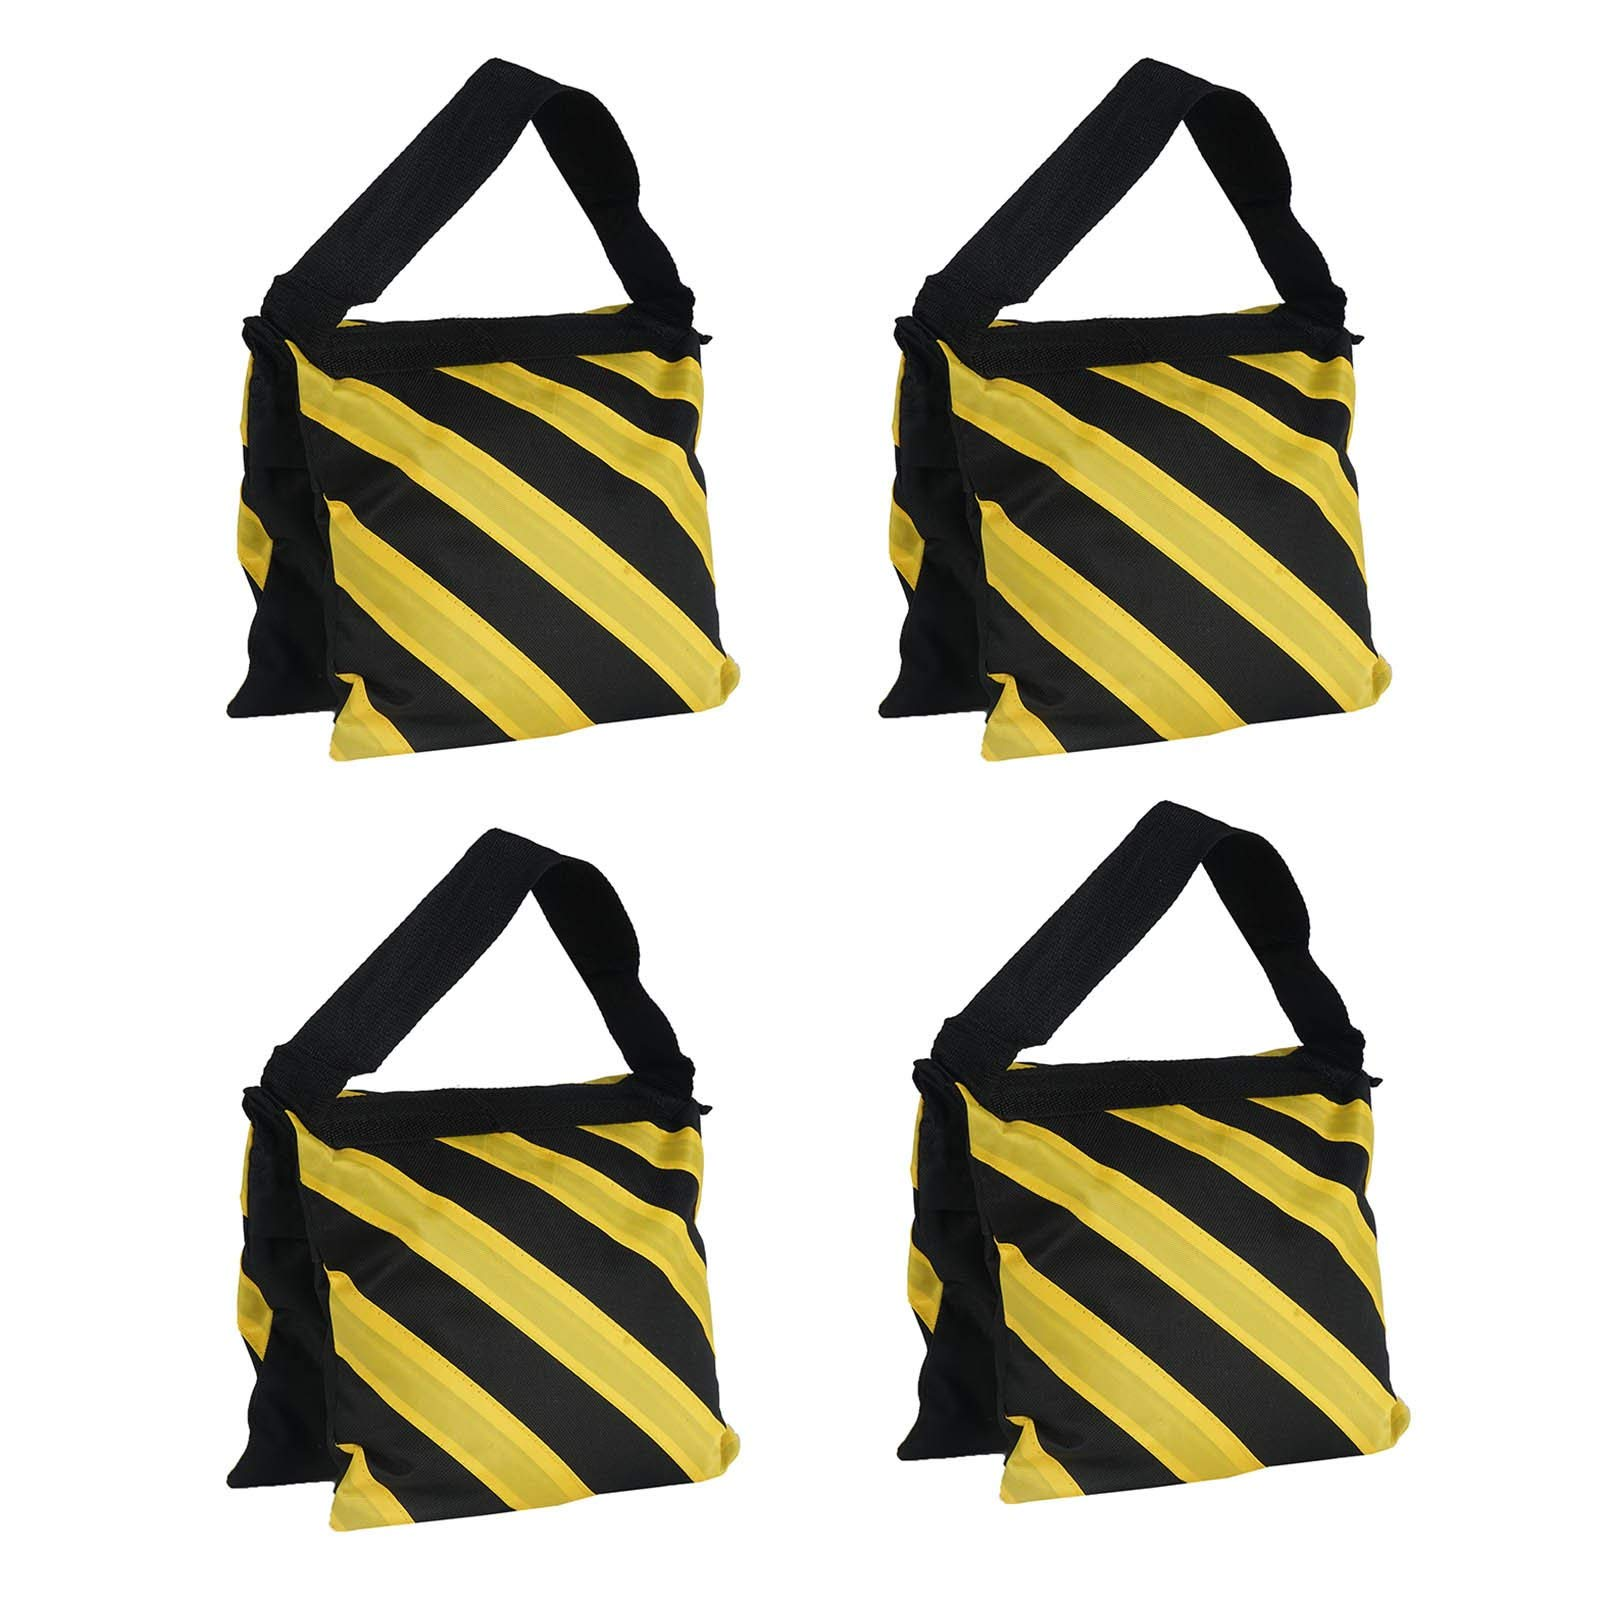 Efavormart 4 Pack Heavy Duty Double Zipper Nylon Sand Weight Saddle Bag for Light Backdrop Stands Tripods - Yellow/Black by Efavormart.com